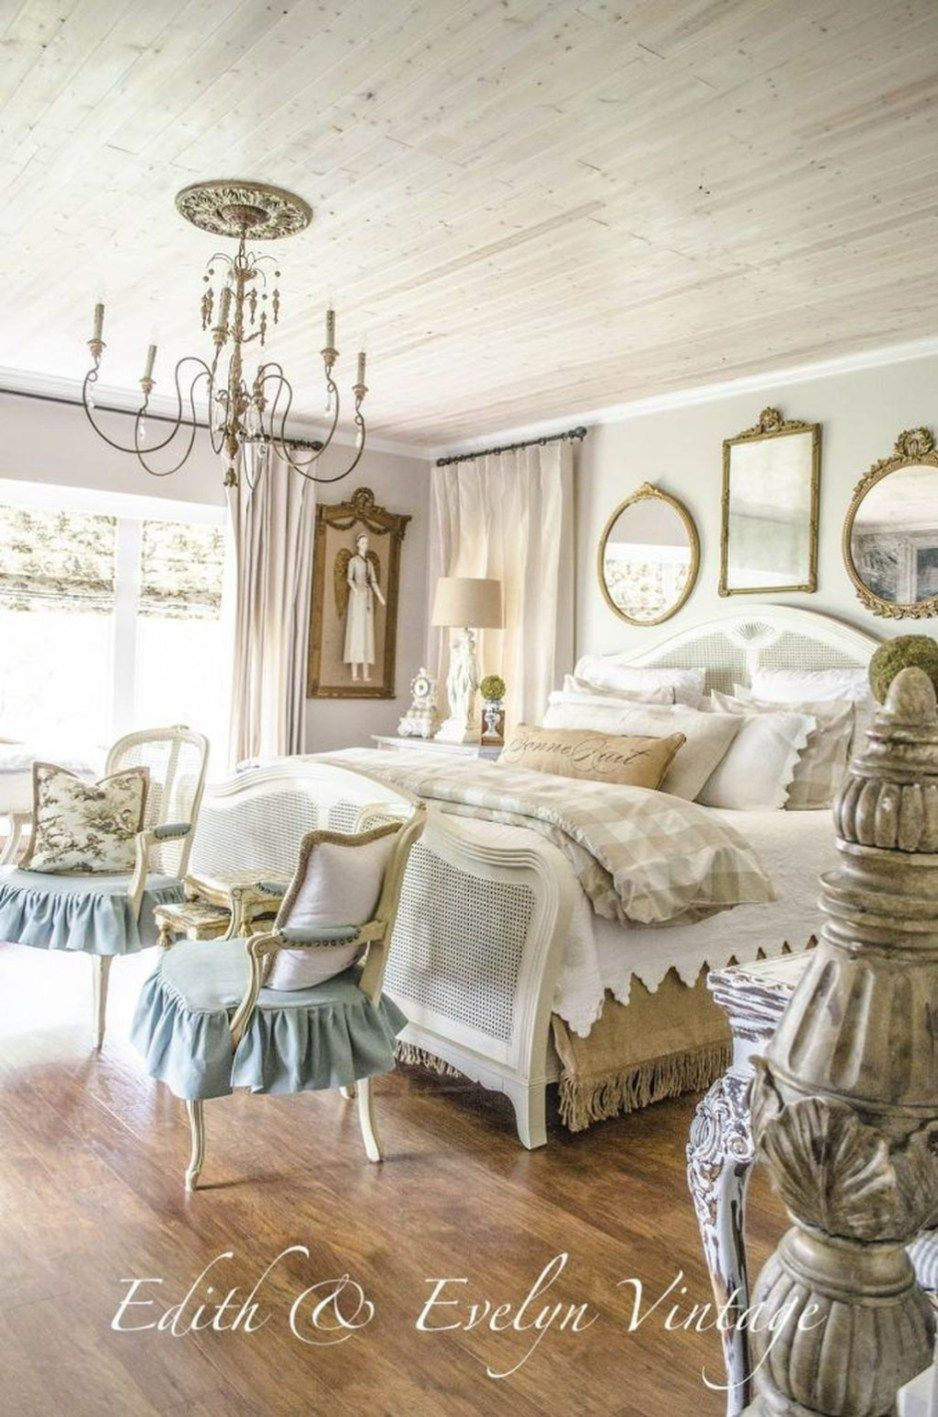 Simply French Country Home Decor Ideas24 Country Bedroom Decor French Country Decorating Bedroom French Country Living Room